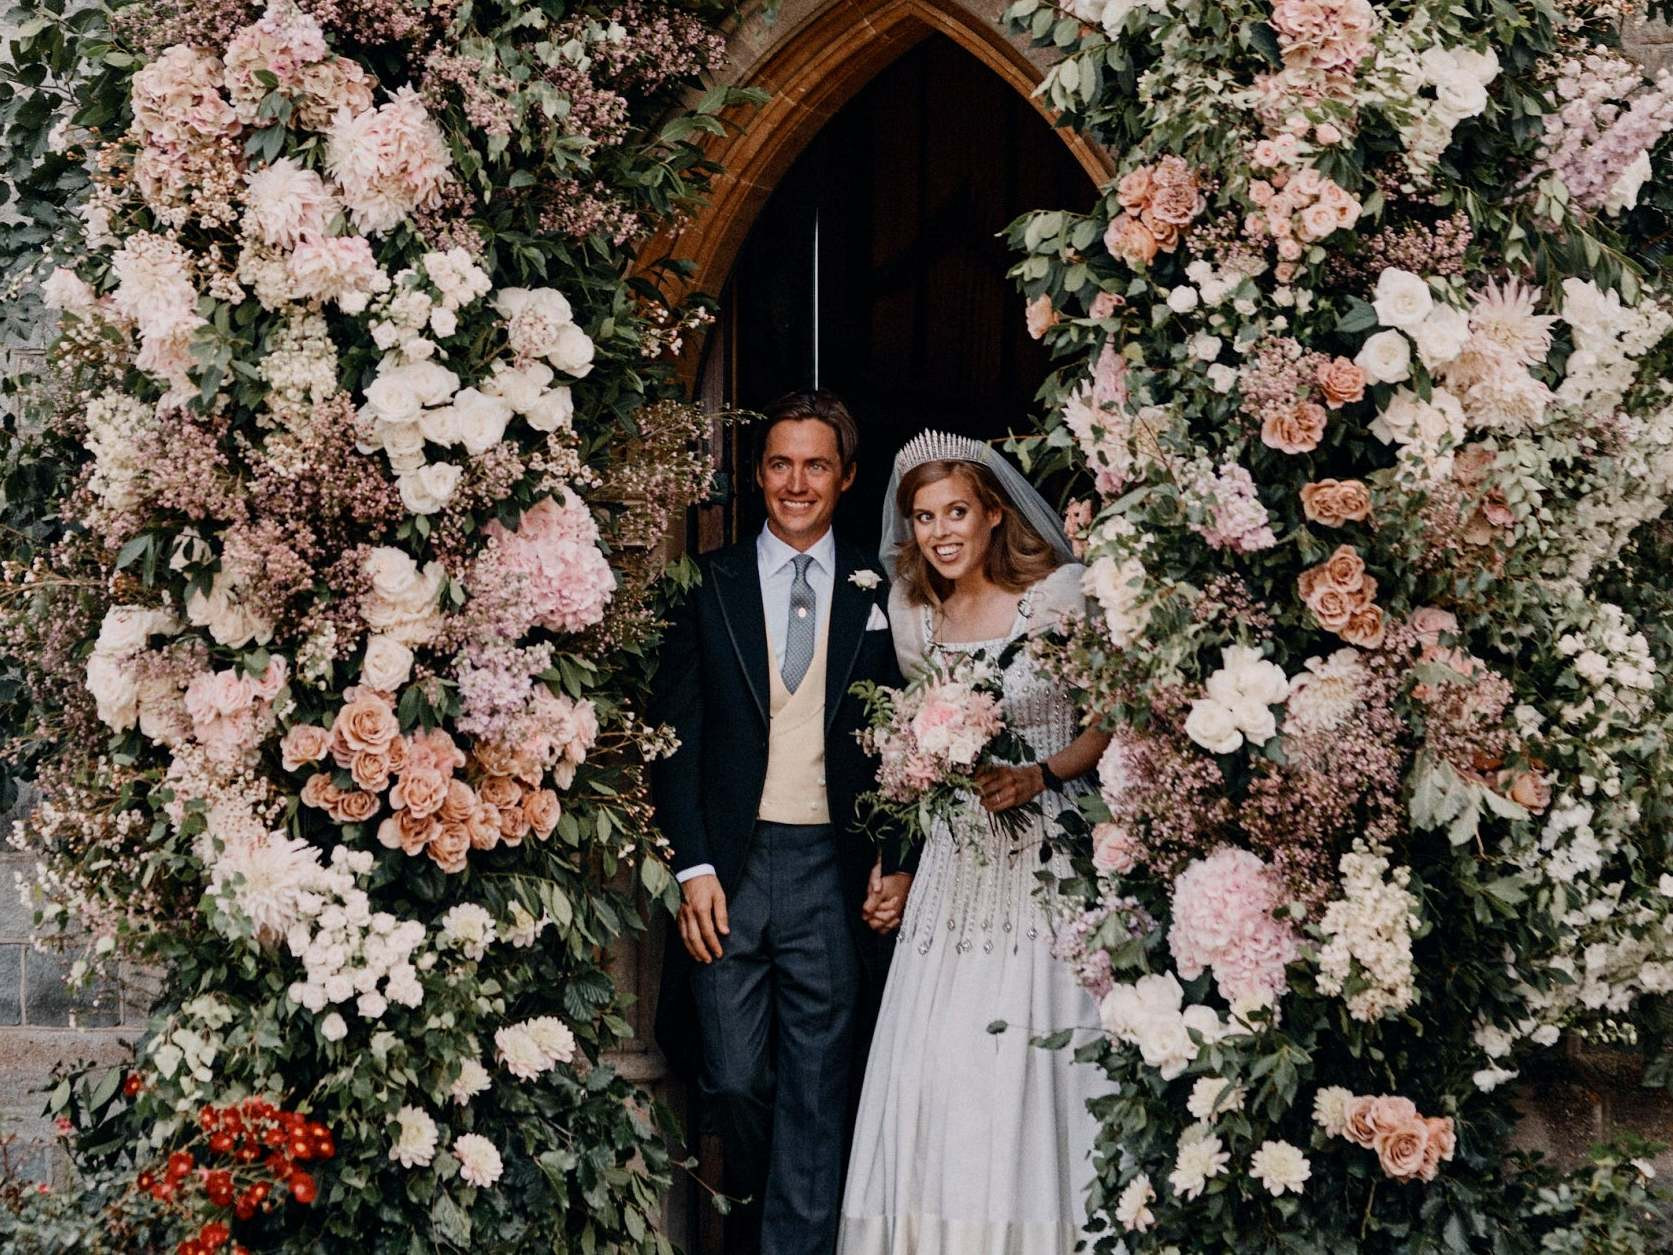 Princess Beatrice S Wedding Bouquet Upheld 162 Year Old Royal